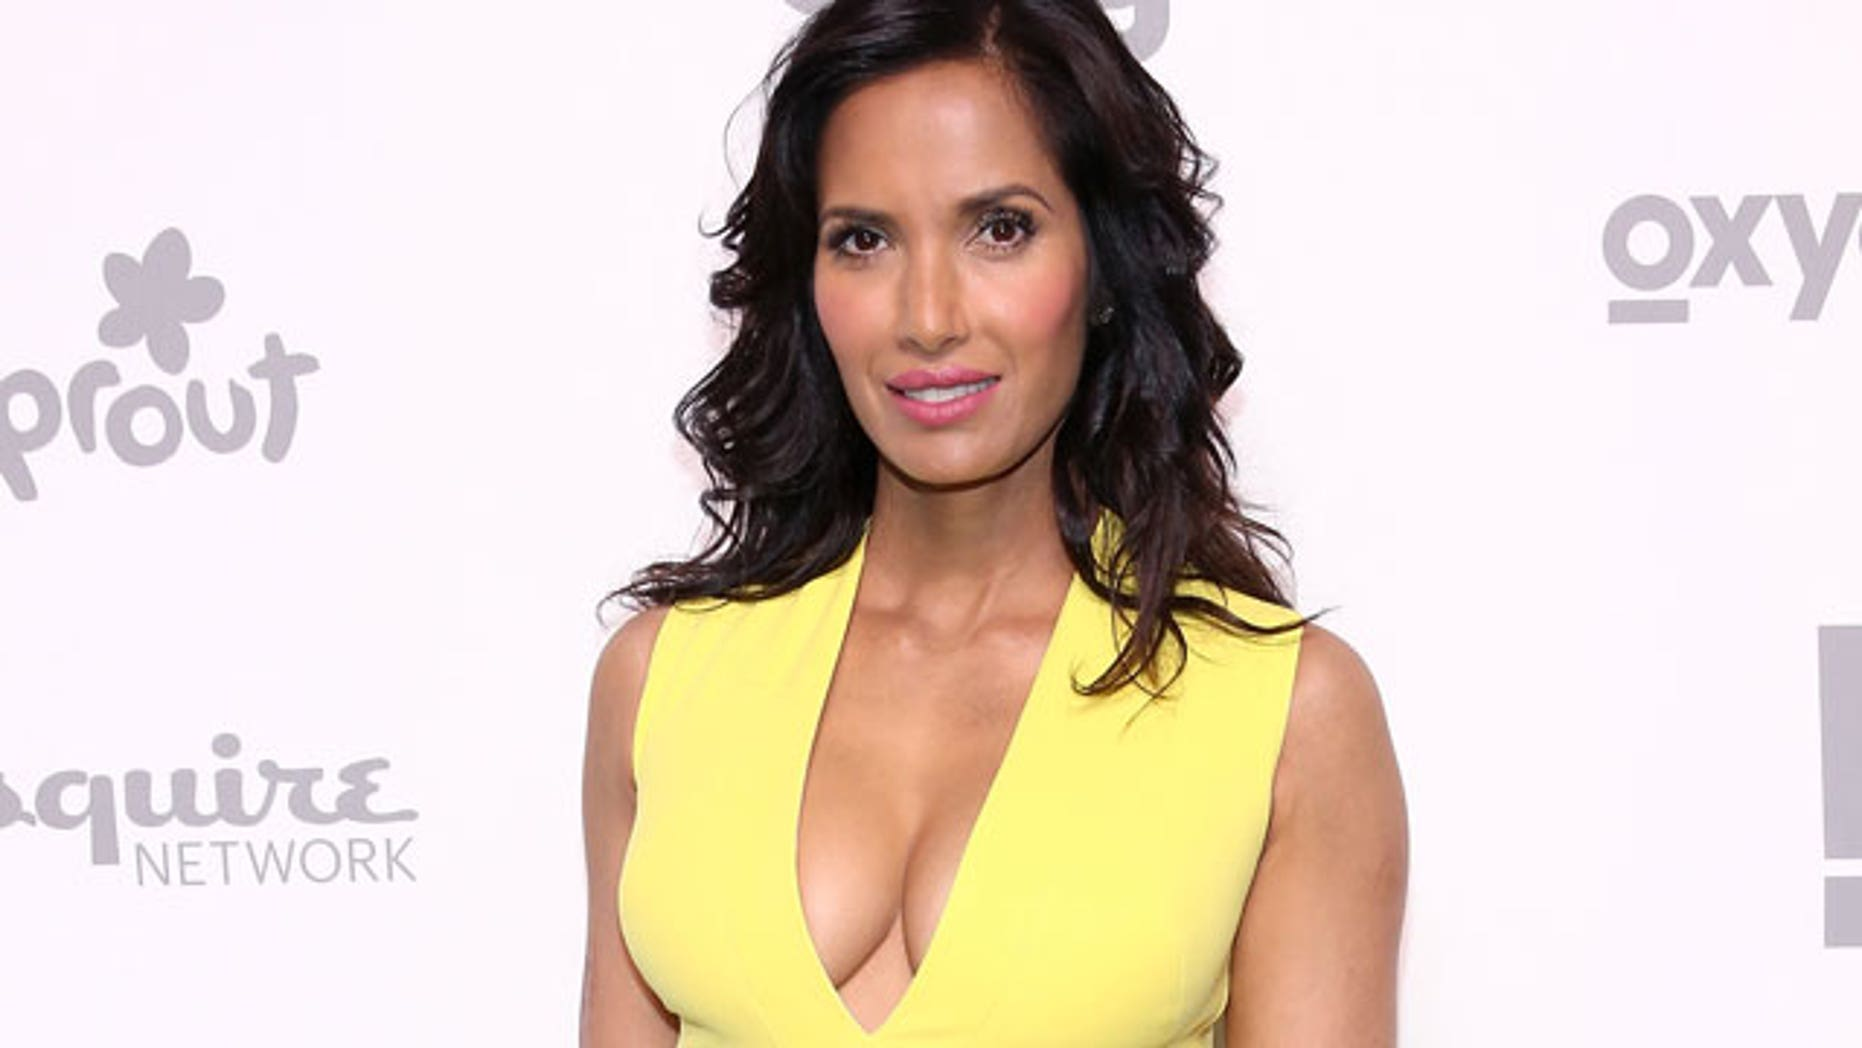 """Top Chef"" host Padma Lakshmi was allegedly threatened in 2014 while filming the competition show in Boston. (2015 Getty Images)"